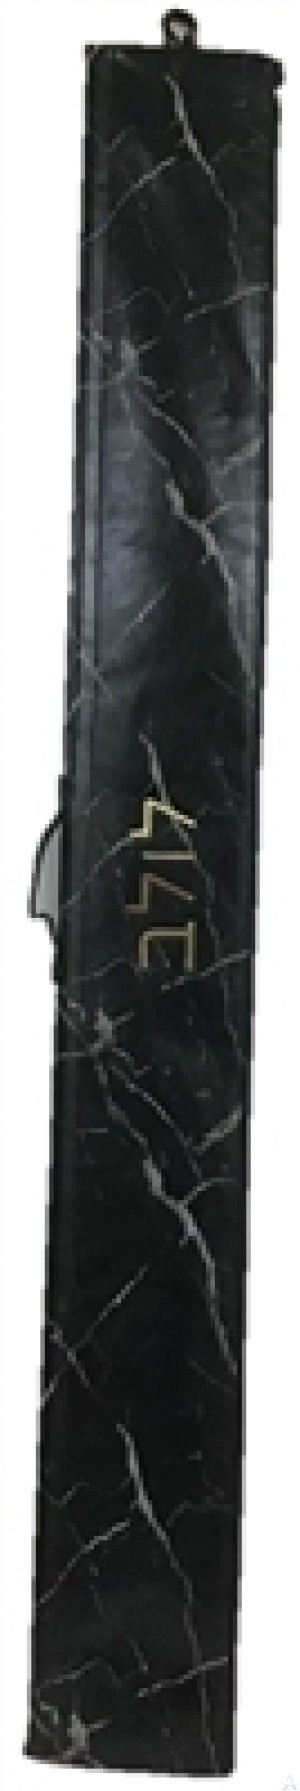 Lulav Holder Black Marble